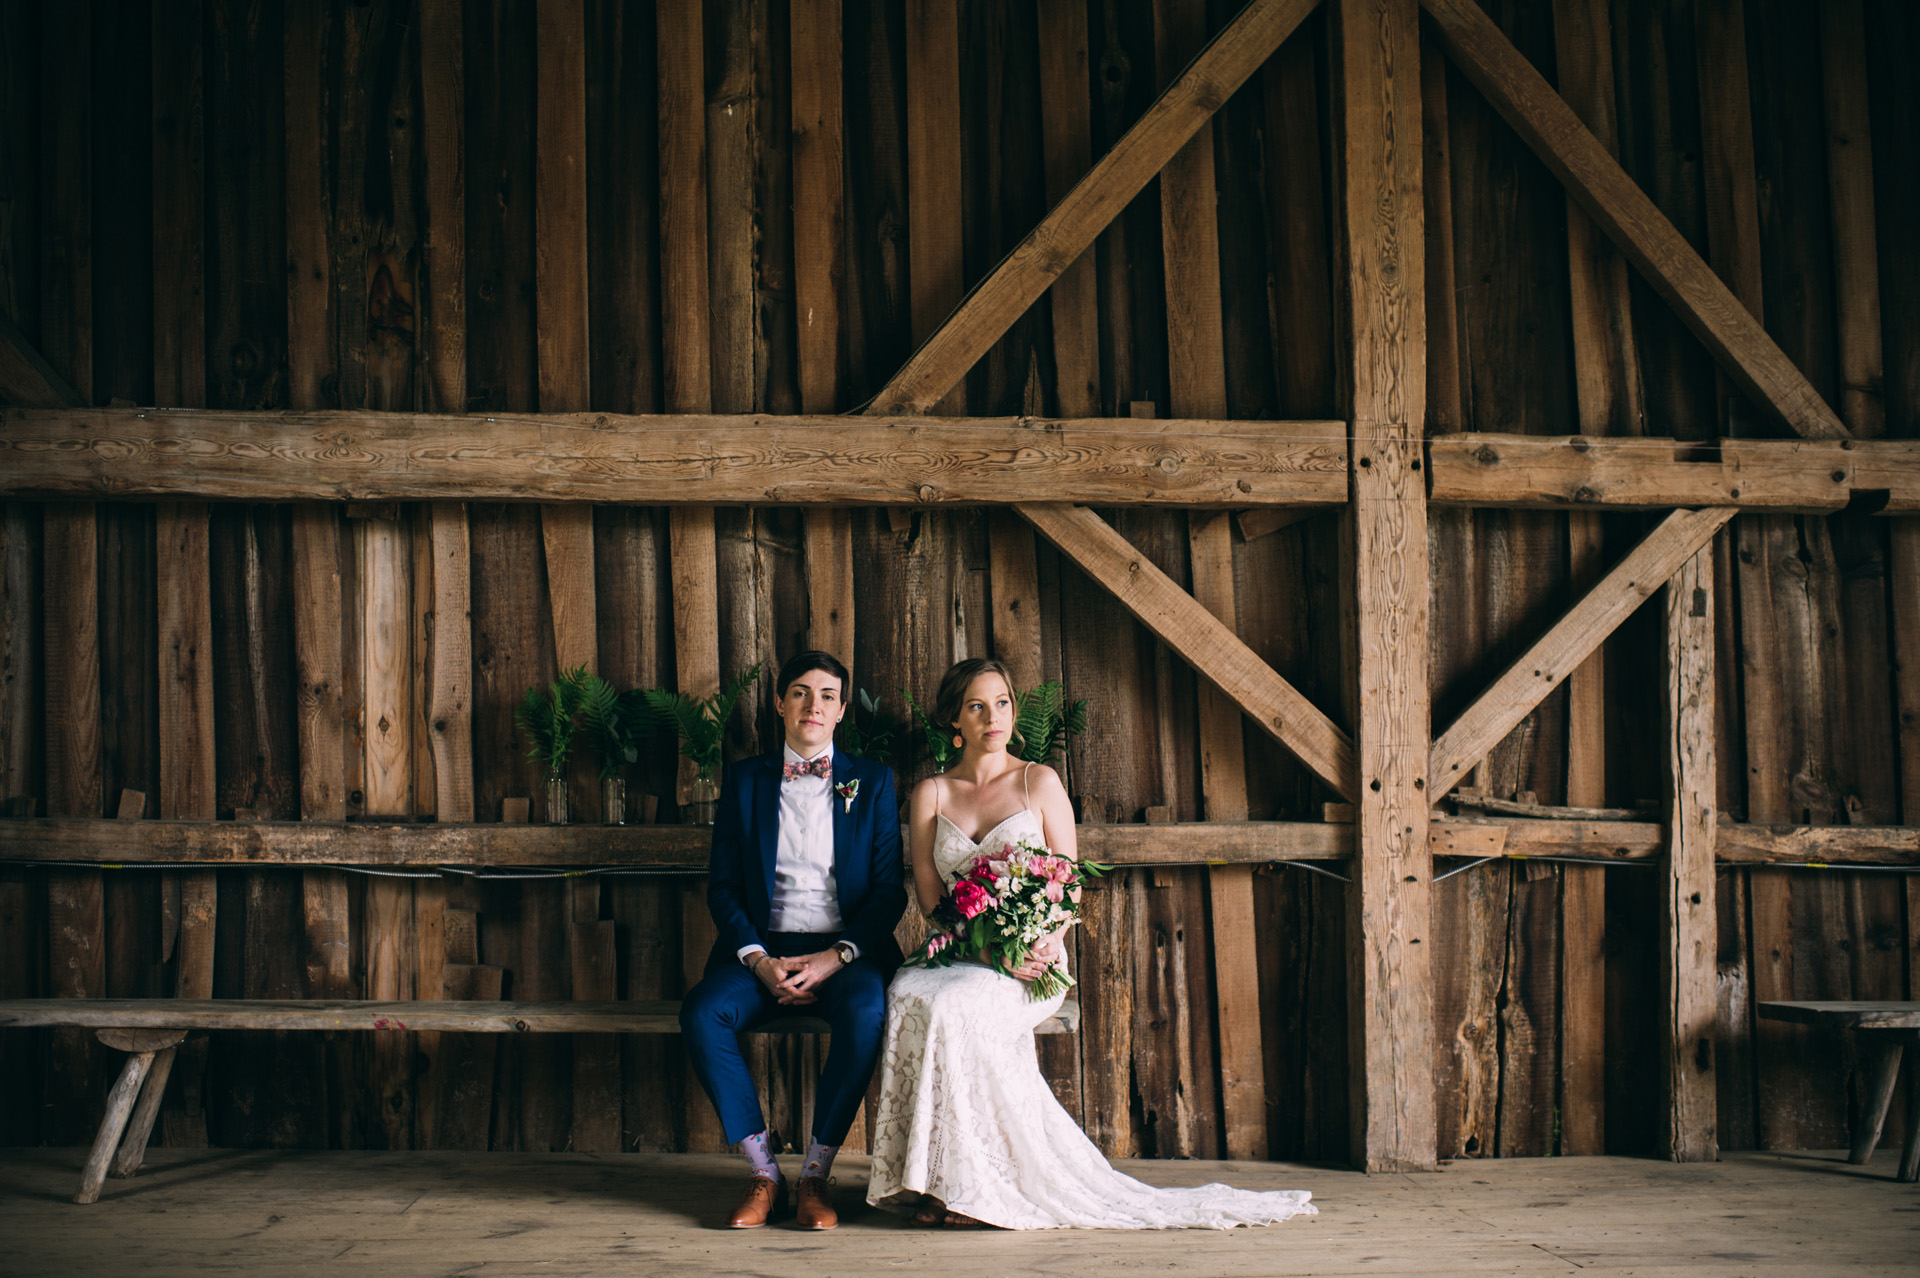 broadturn-farm-wedding-27